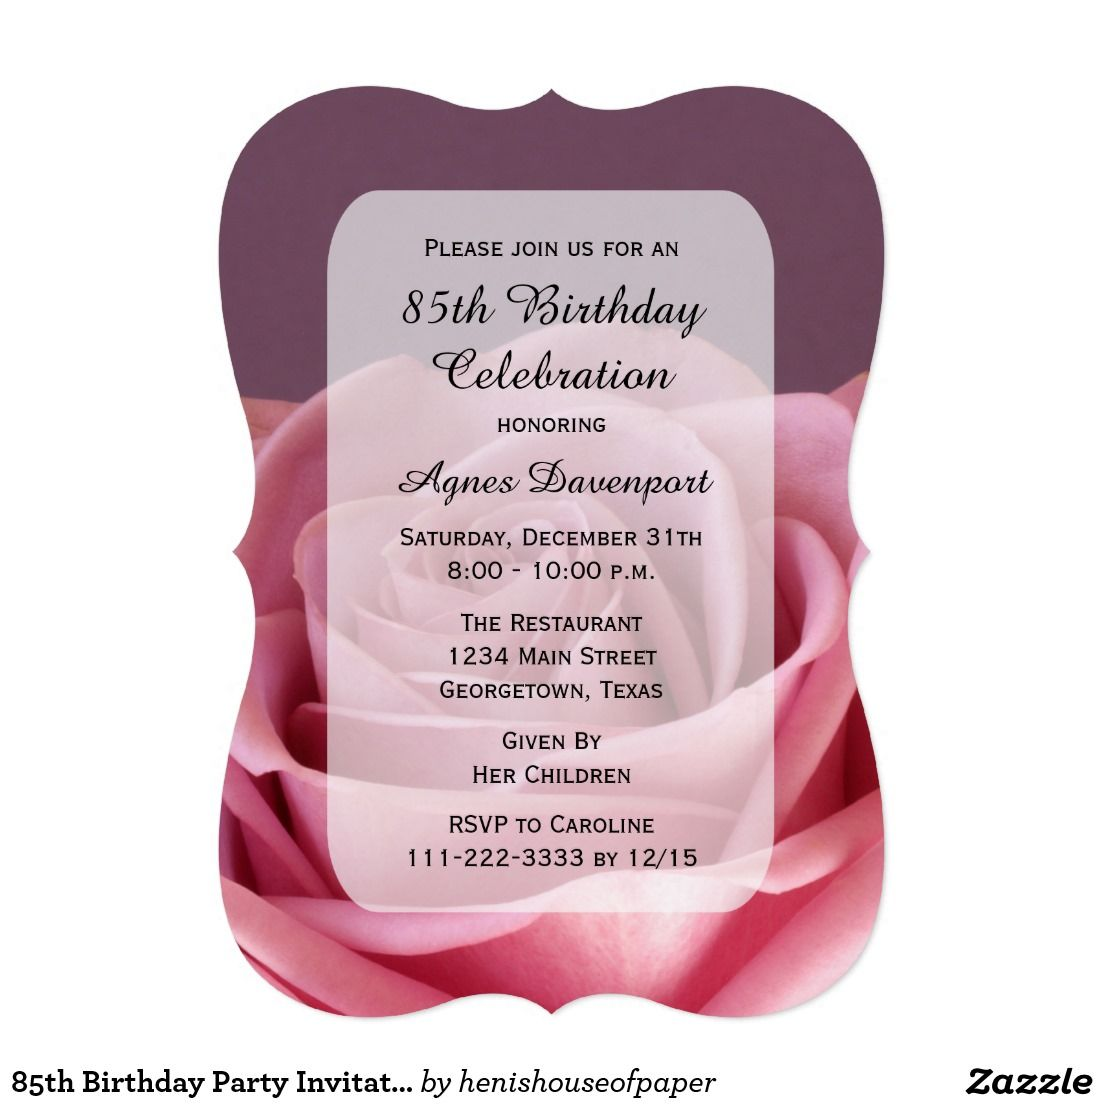 85th birthday party invitation lovely rose invitation pinterest 85th birthday party invitation lovely rose filmwisefo